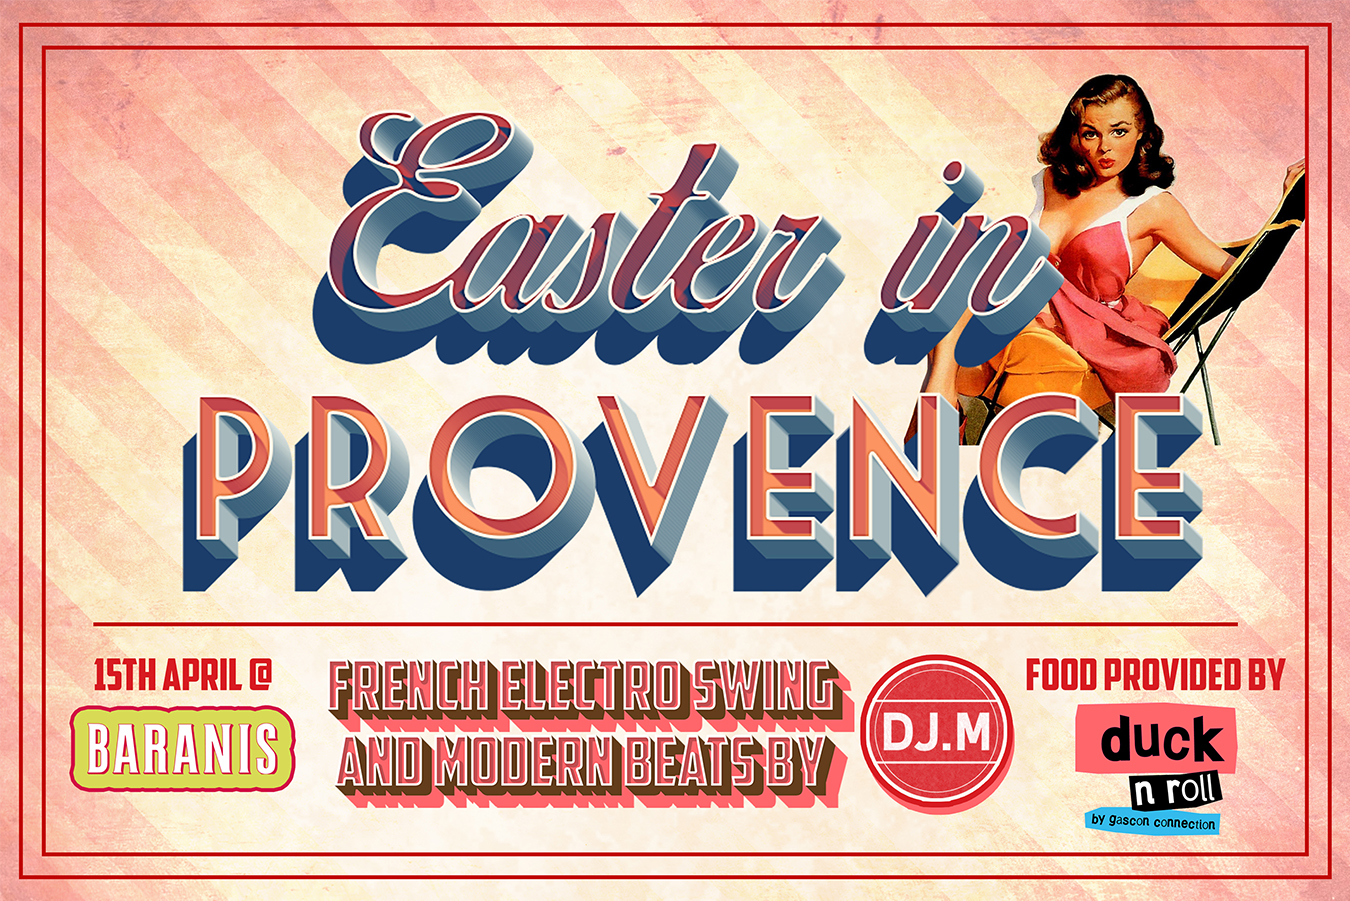 Poster for an Easter in Provence party at Baranis on 15th April